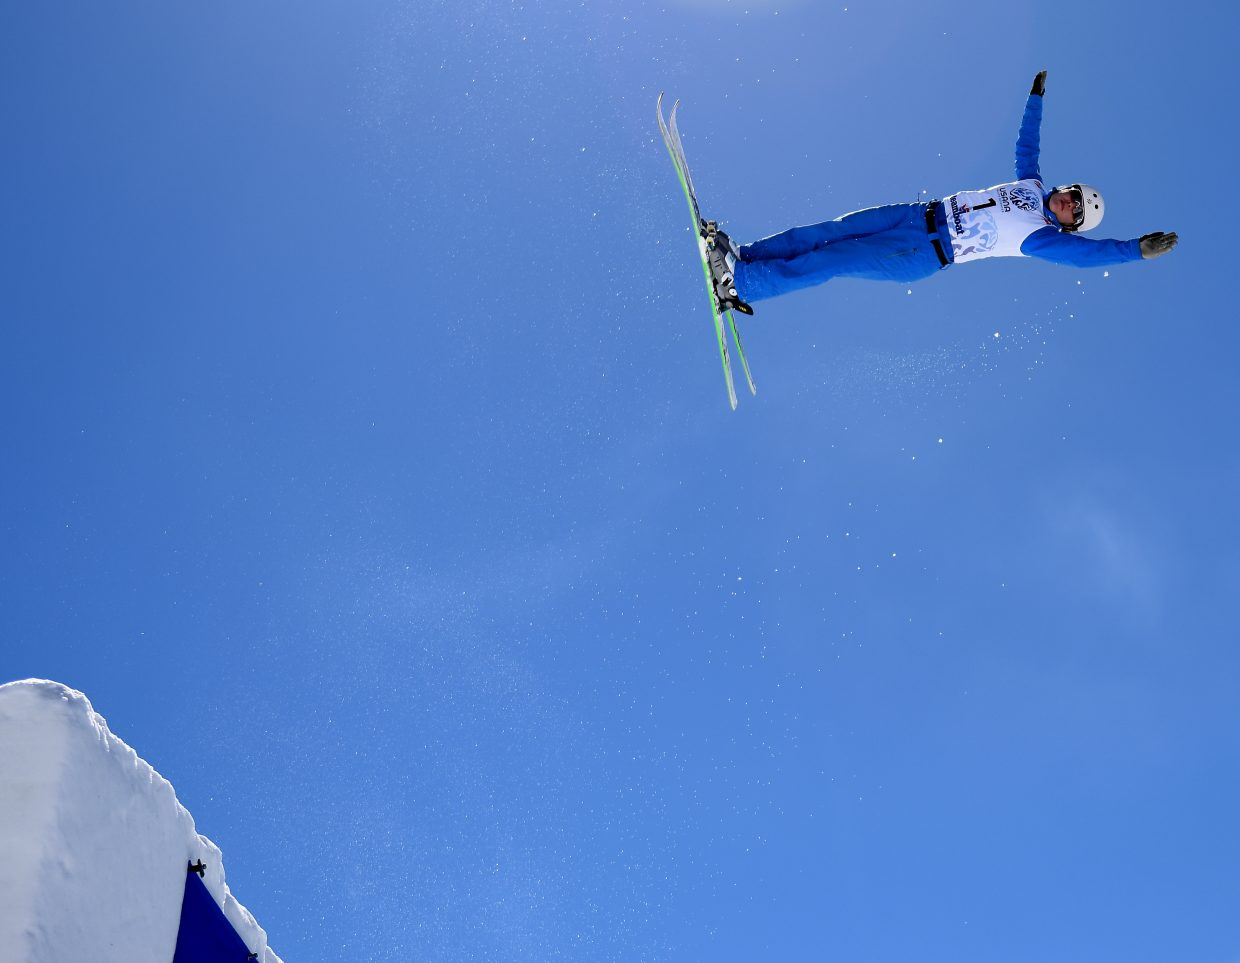 Ashley Caldwell launches from the jump Saturday during the U.S. Freestyle National Championships aerials event in Steamboat Springs.